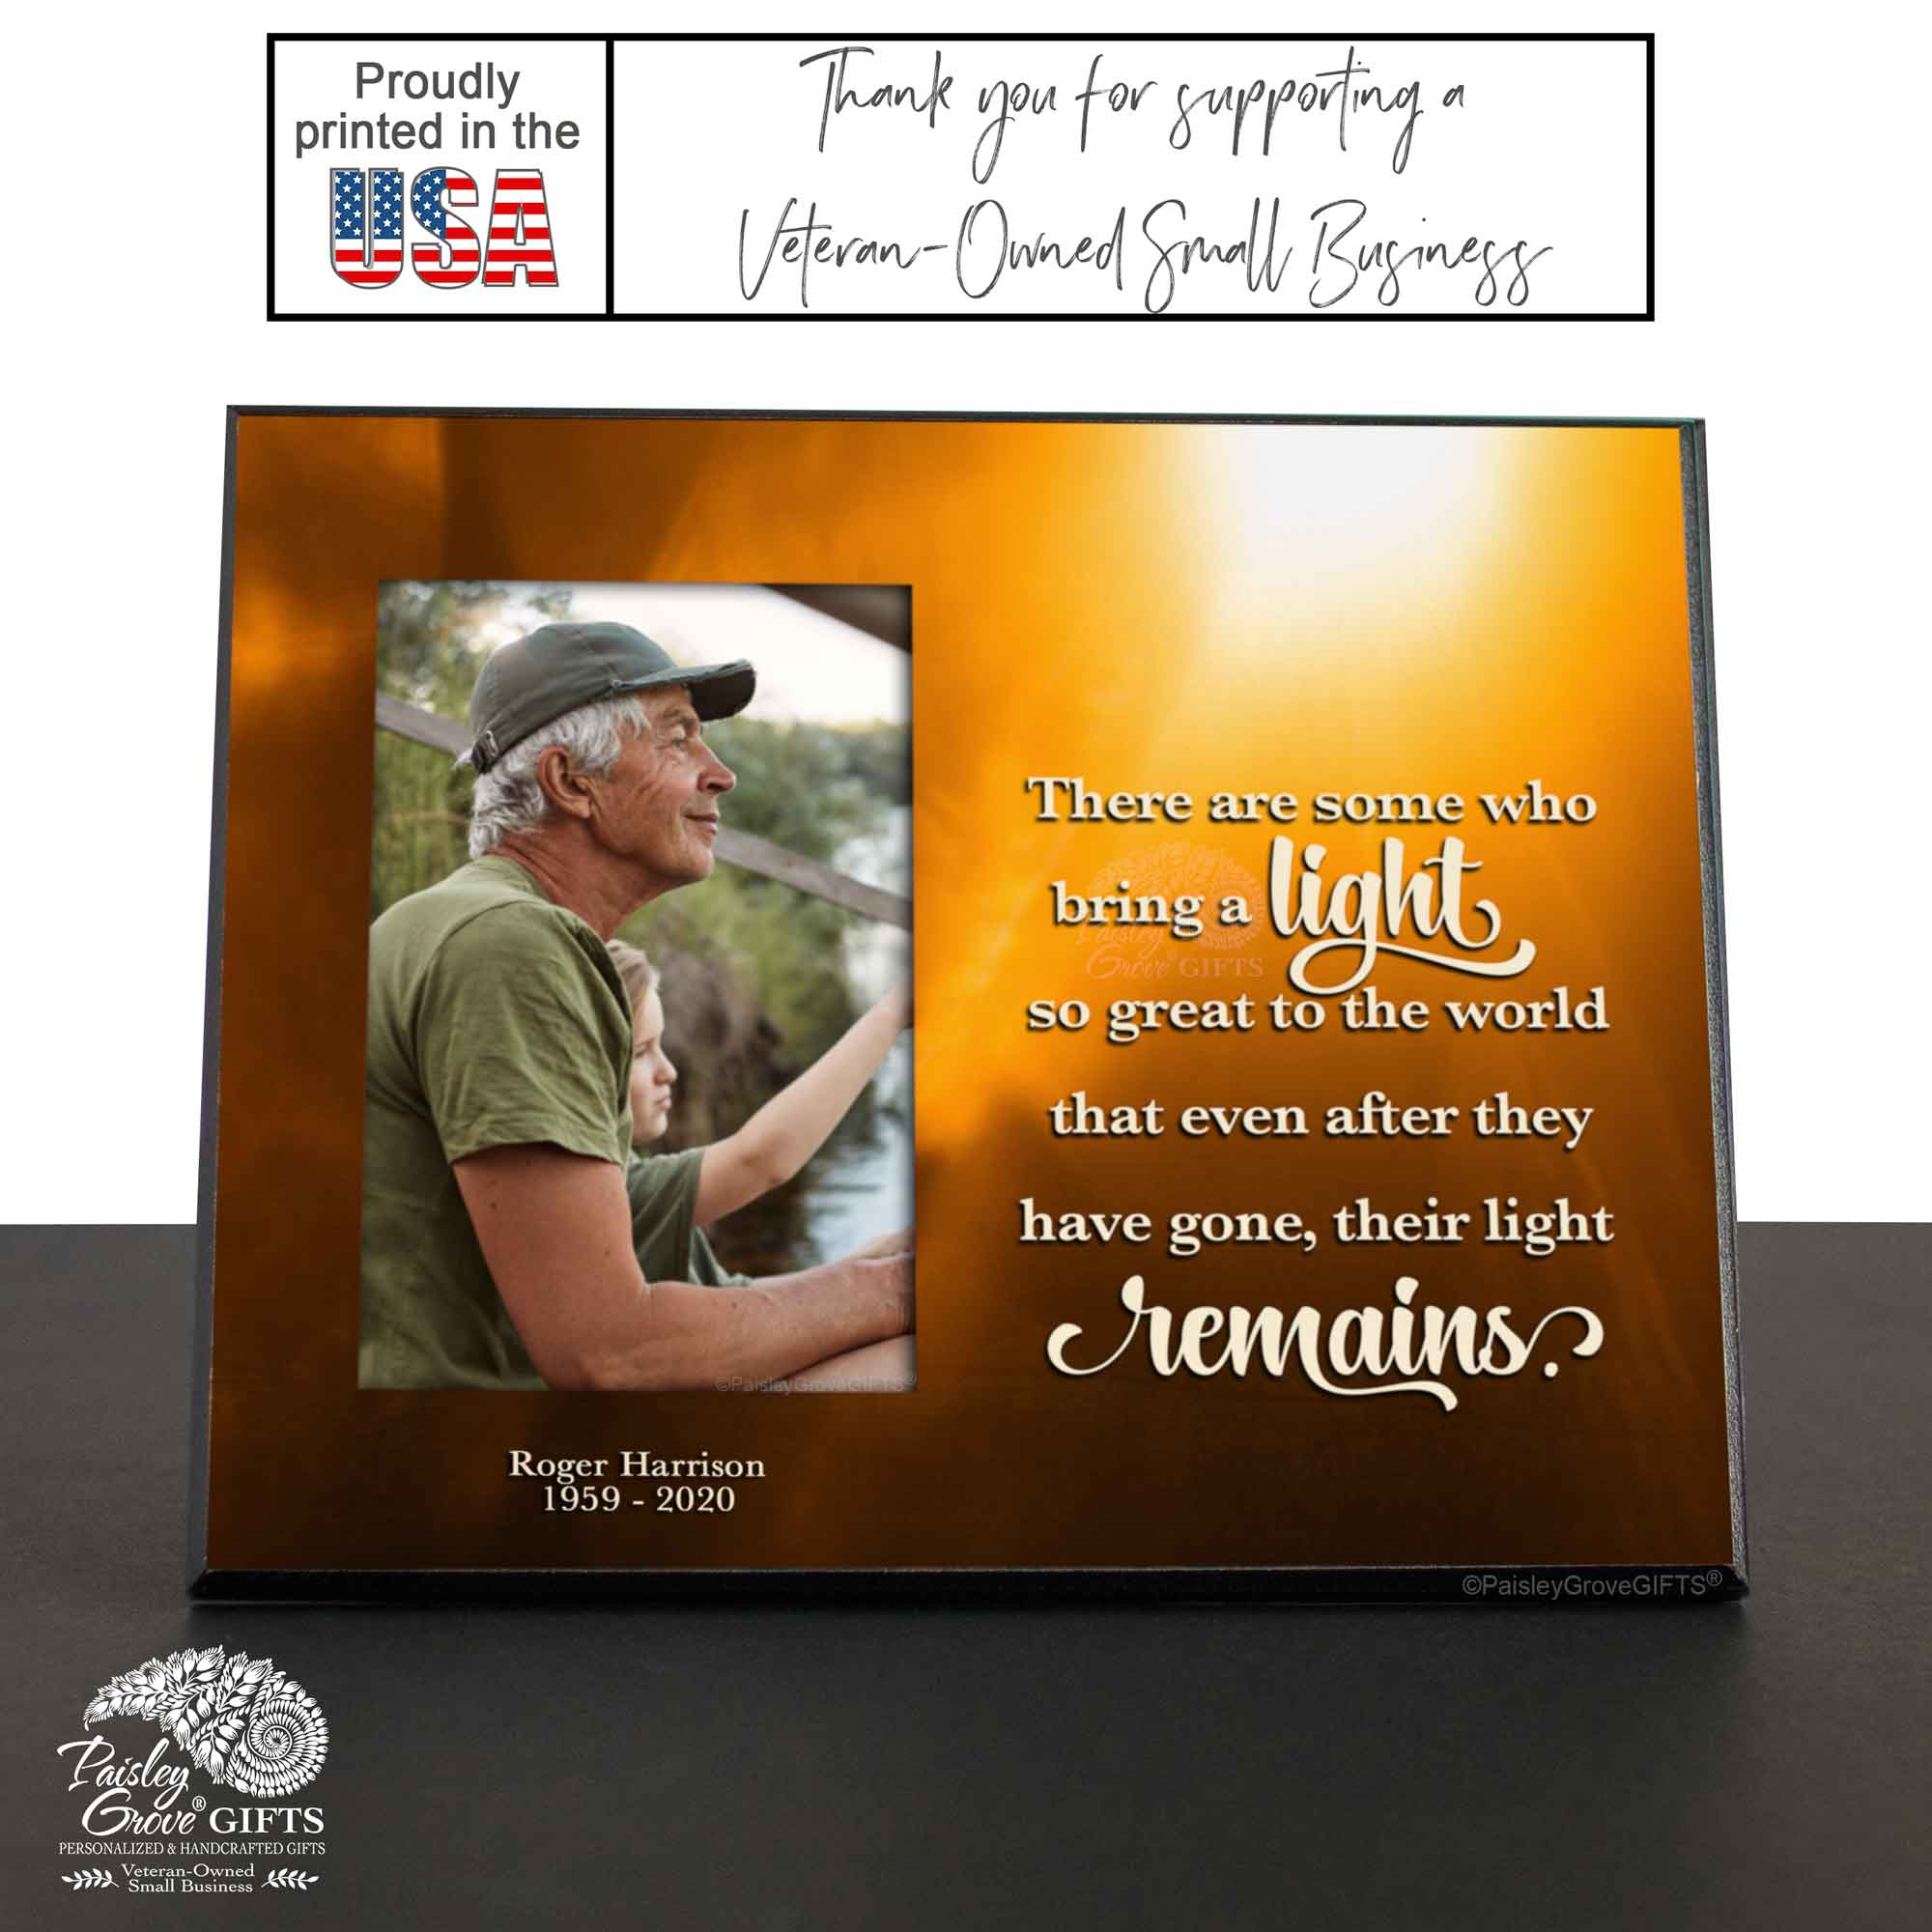 CopyrightPaisleyGroveGIFTS S235a2 Printed in the USA Personalized Memorial Gift Bereavement Frame